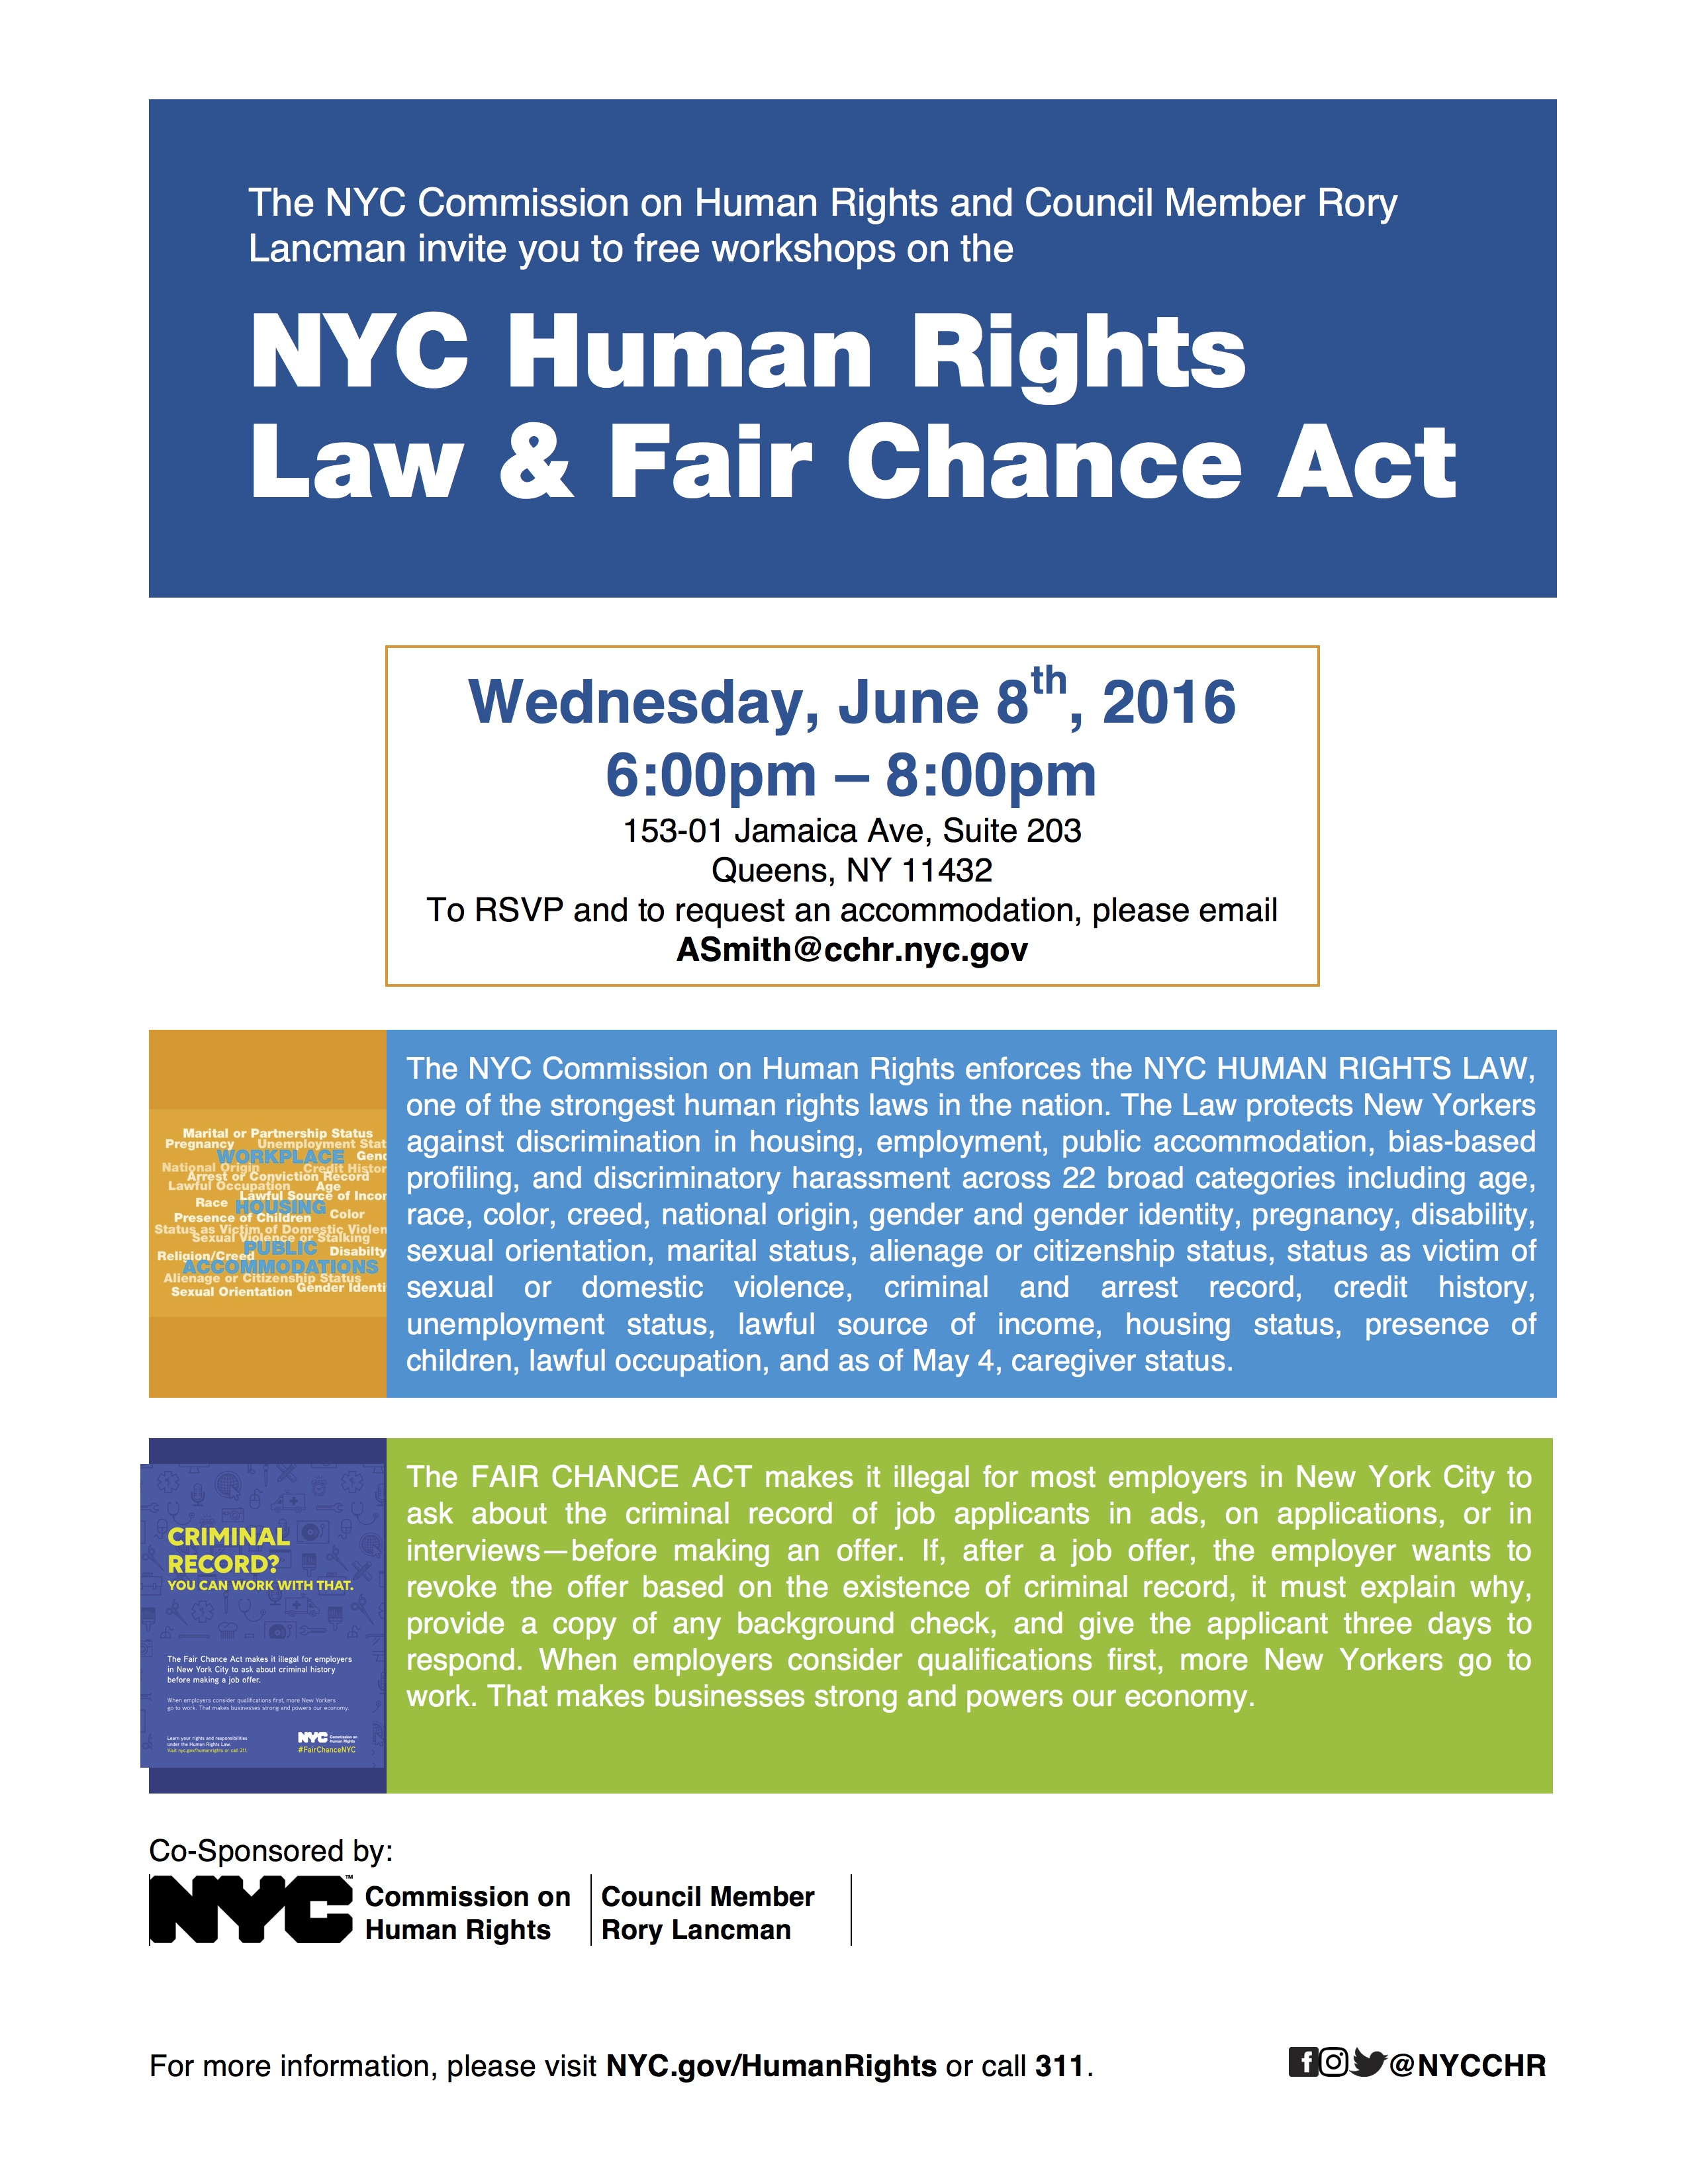 NYC Human Rights Law & Fair Chance Act – Jamaica 311